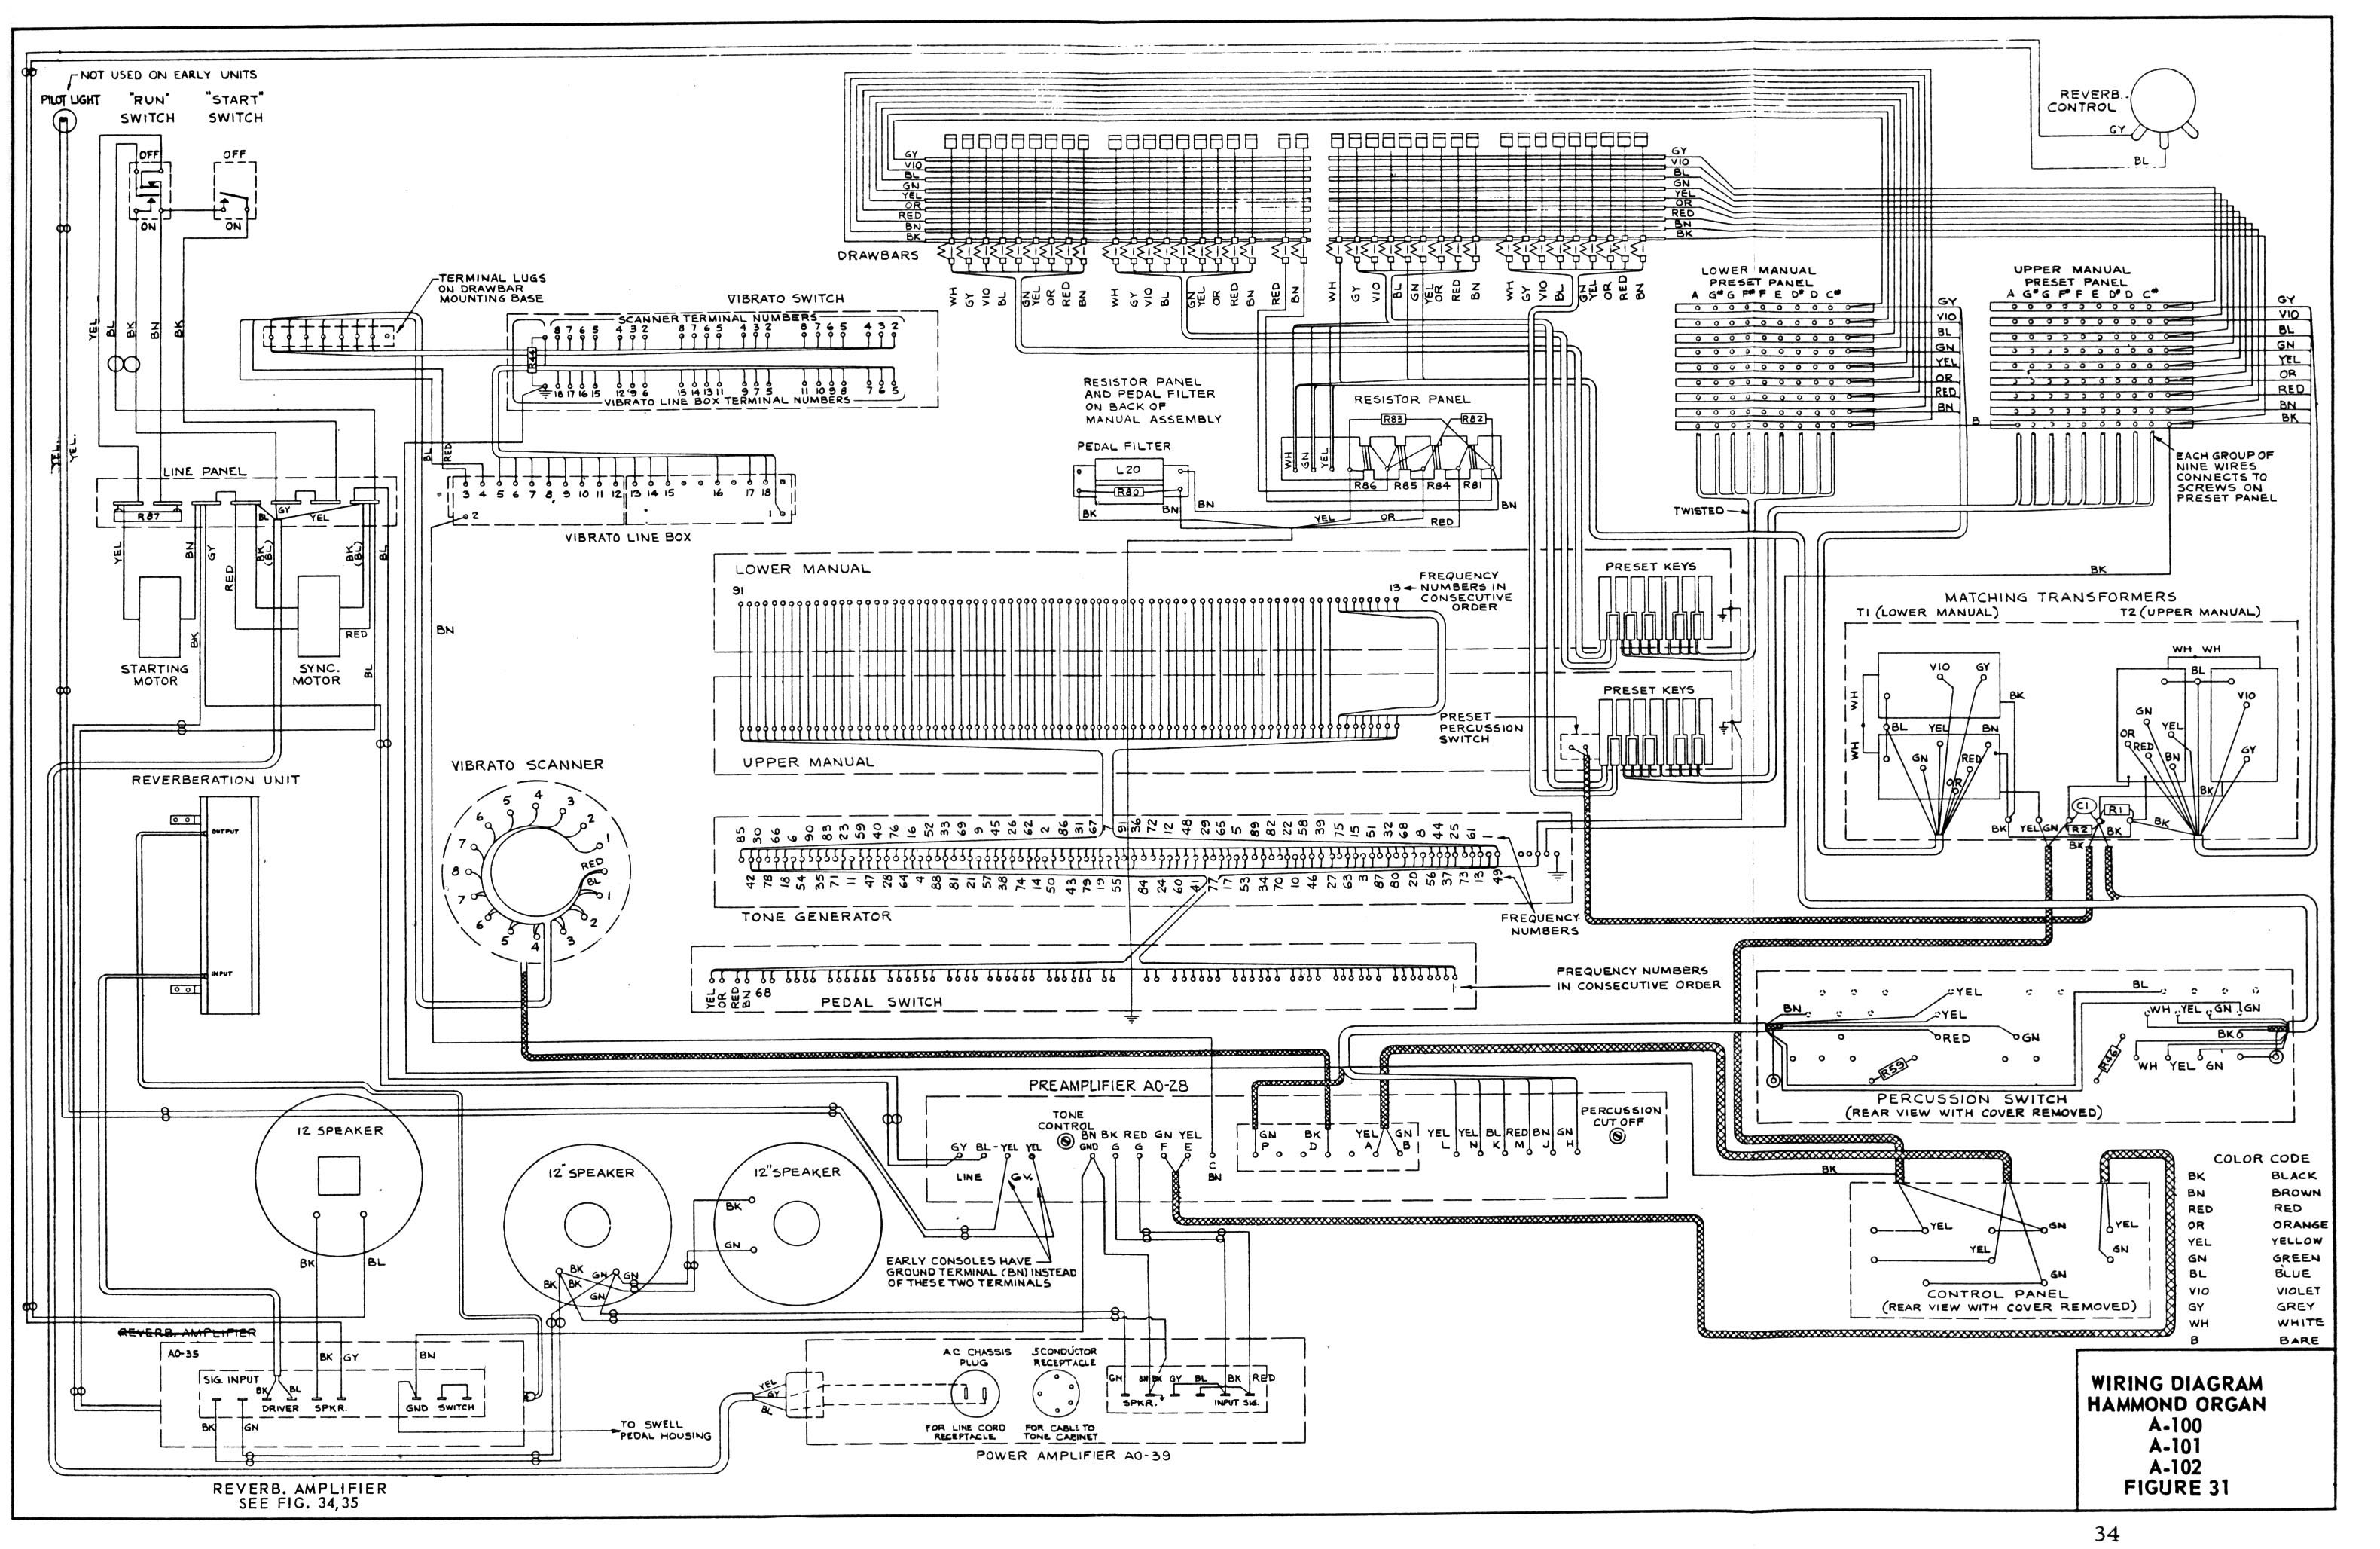 Fisher Snow Plow Wiring Diagram Western Snow Plow Wiring Diagram